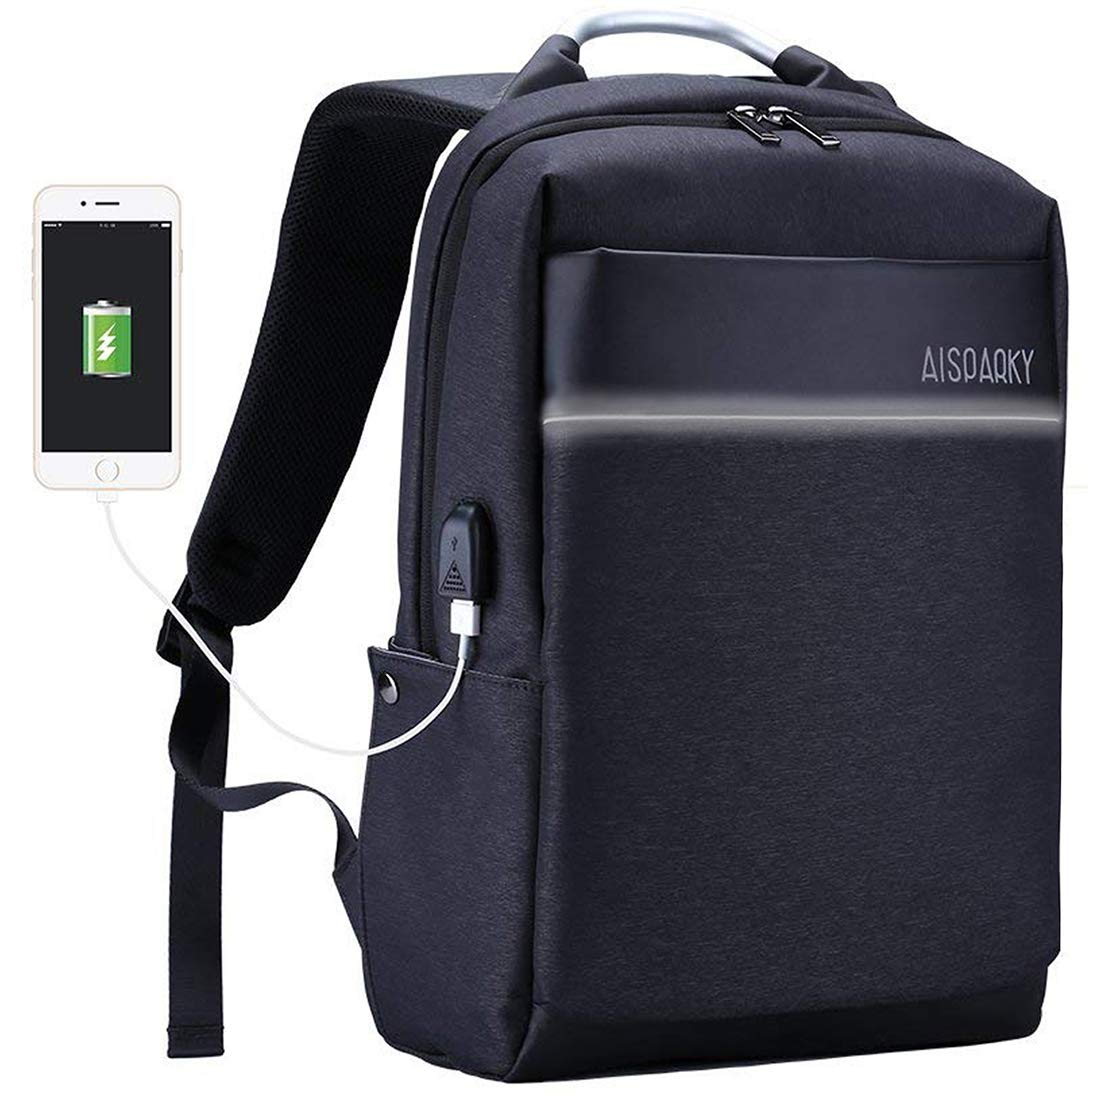 bff46f54068a Laptop Backpack, Stylish Water Resistant School bag with USB Charging Port  and Anti-Theft Zipper Luminous Safety School Backpack College Computer Bag  Work ...